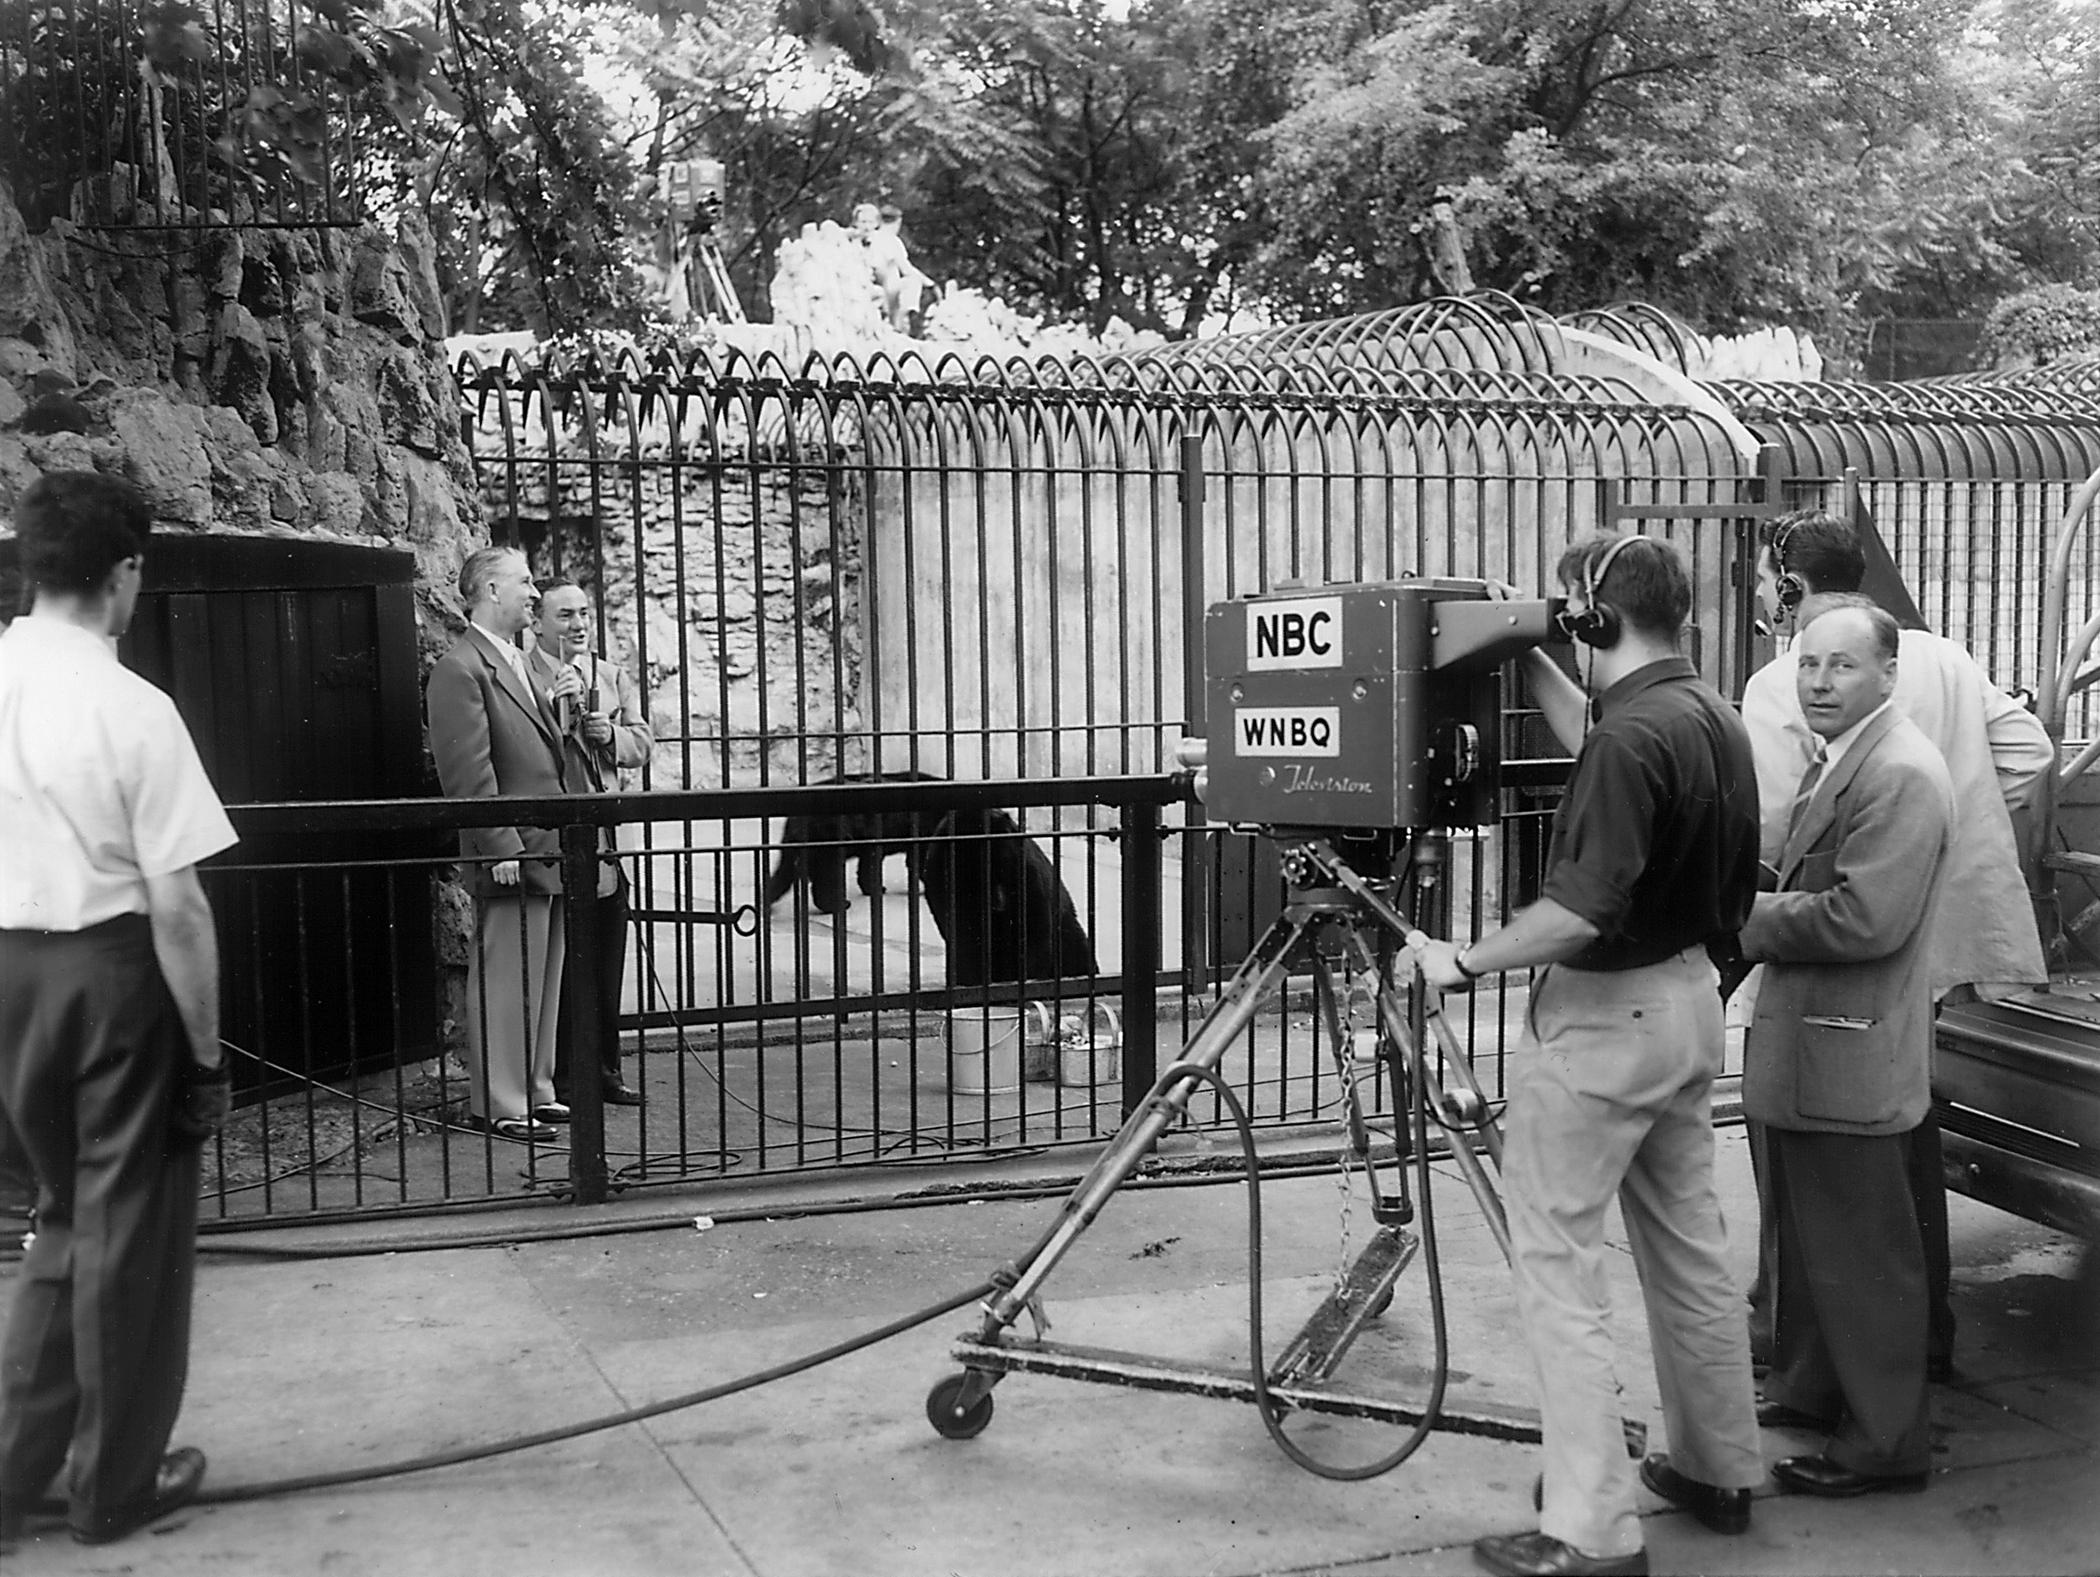 """Zoo Parade"" filming in the 1950s: Lincoln Park Zoo Director Marlin Perkins brings wildlife into households with his TV program, ""Zoo Parade,"" headquartered at Lincoln Park Zoo. (Courtesy Chicago Park District and Chicago History Museum)"